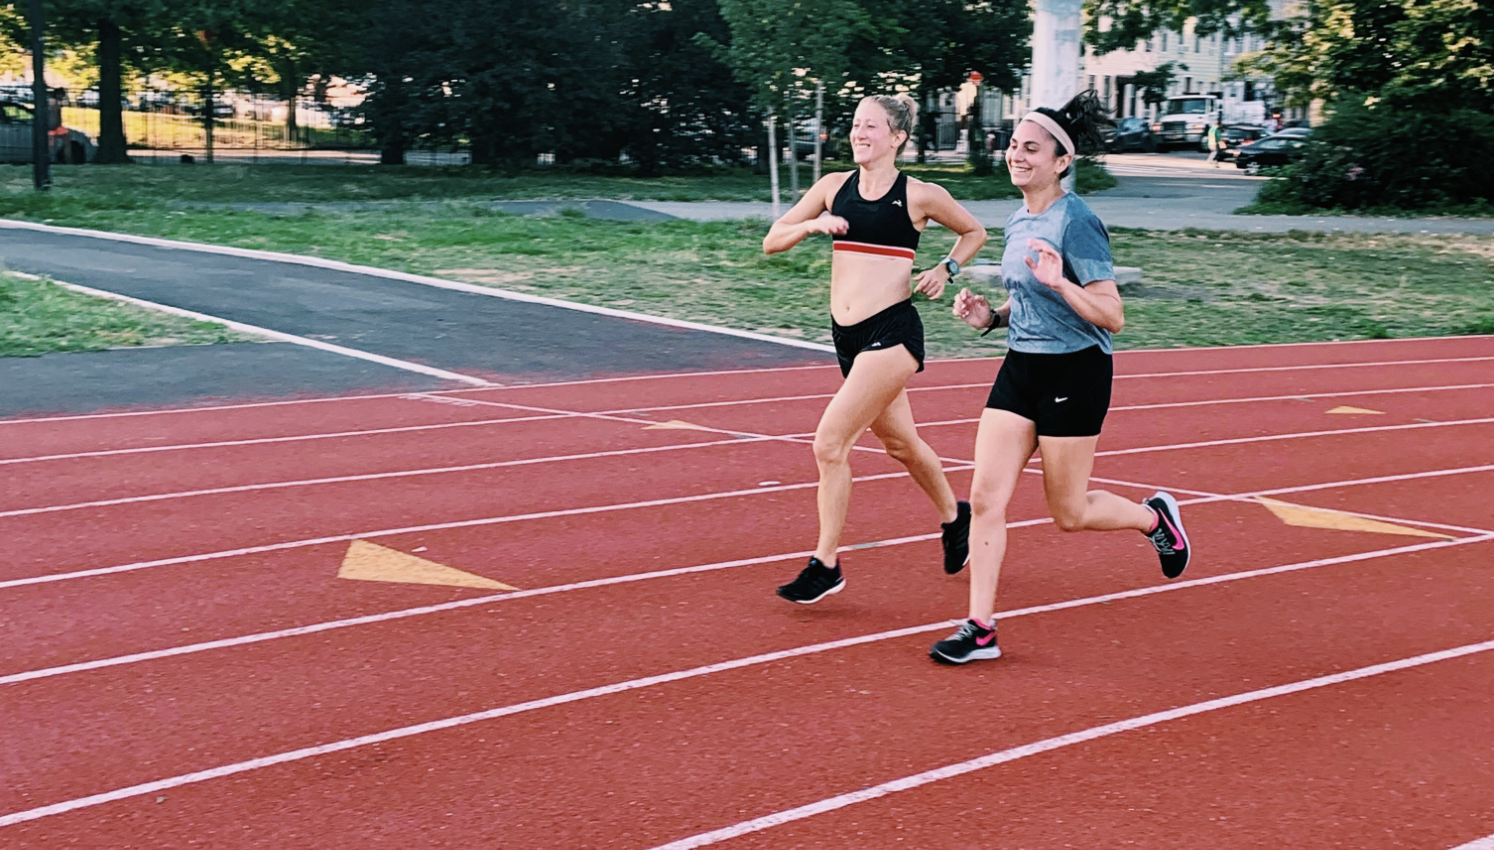 Speed work at the McCarren track with Becca Ades